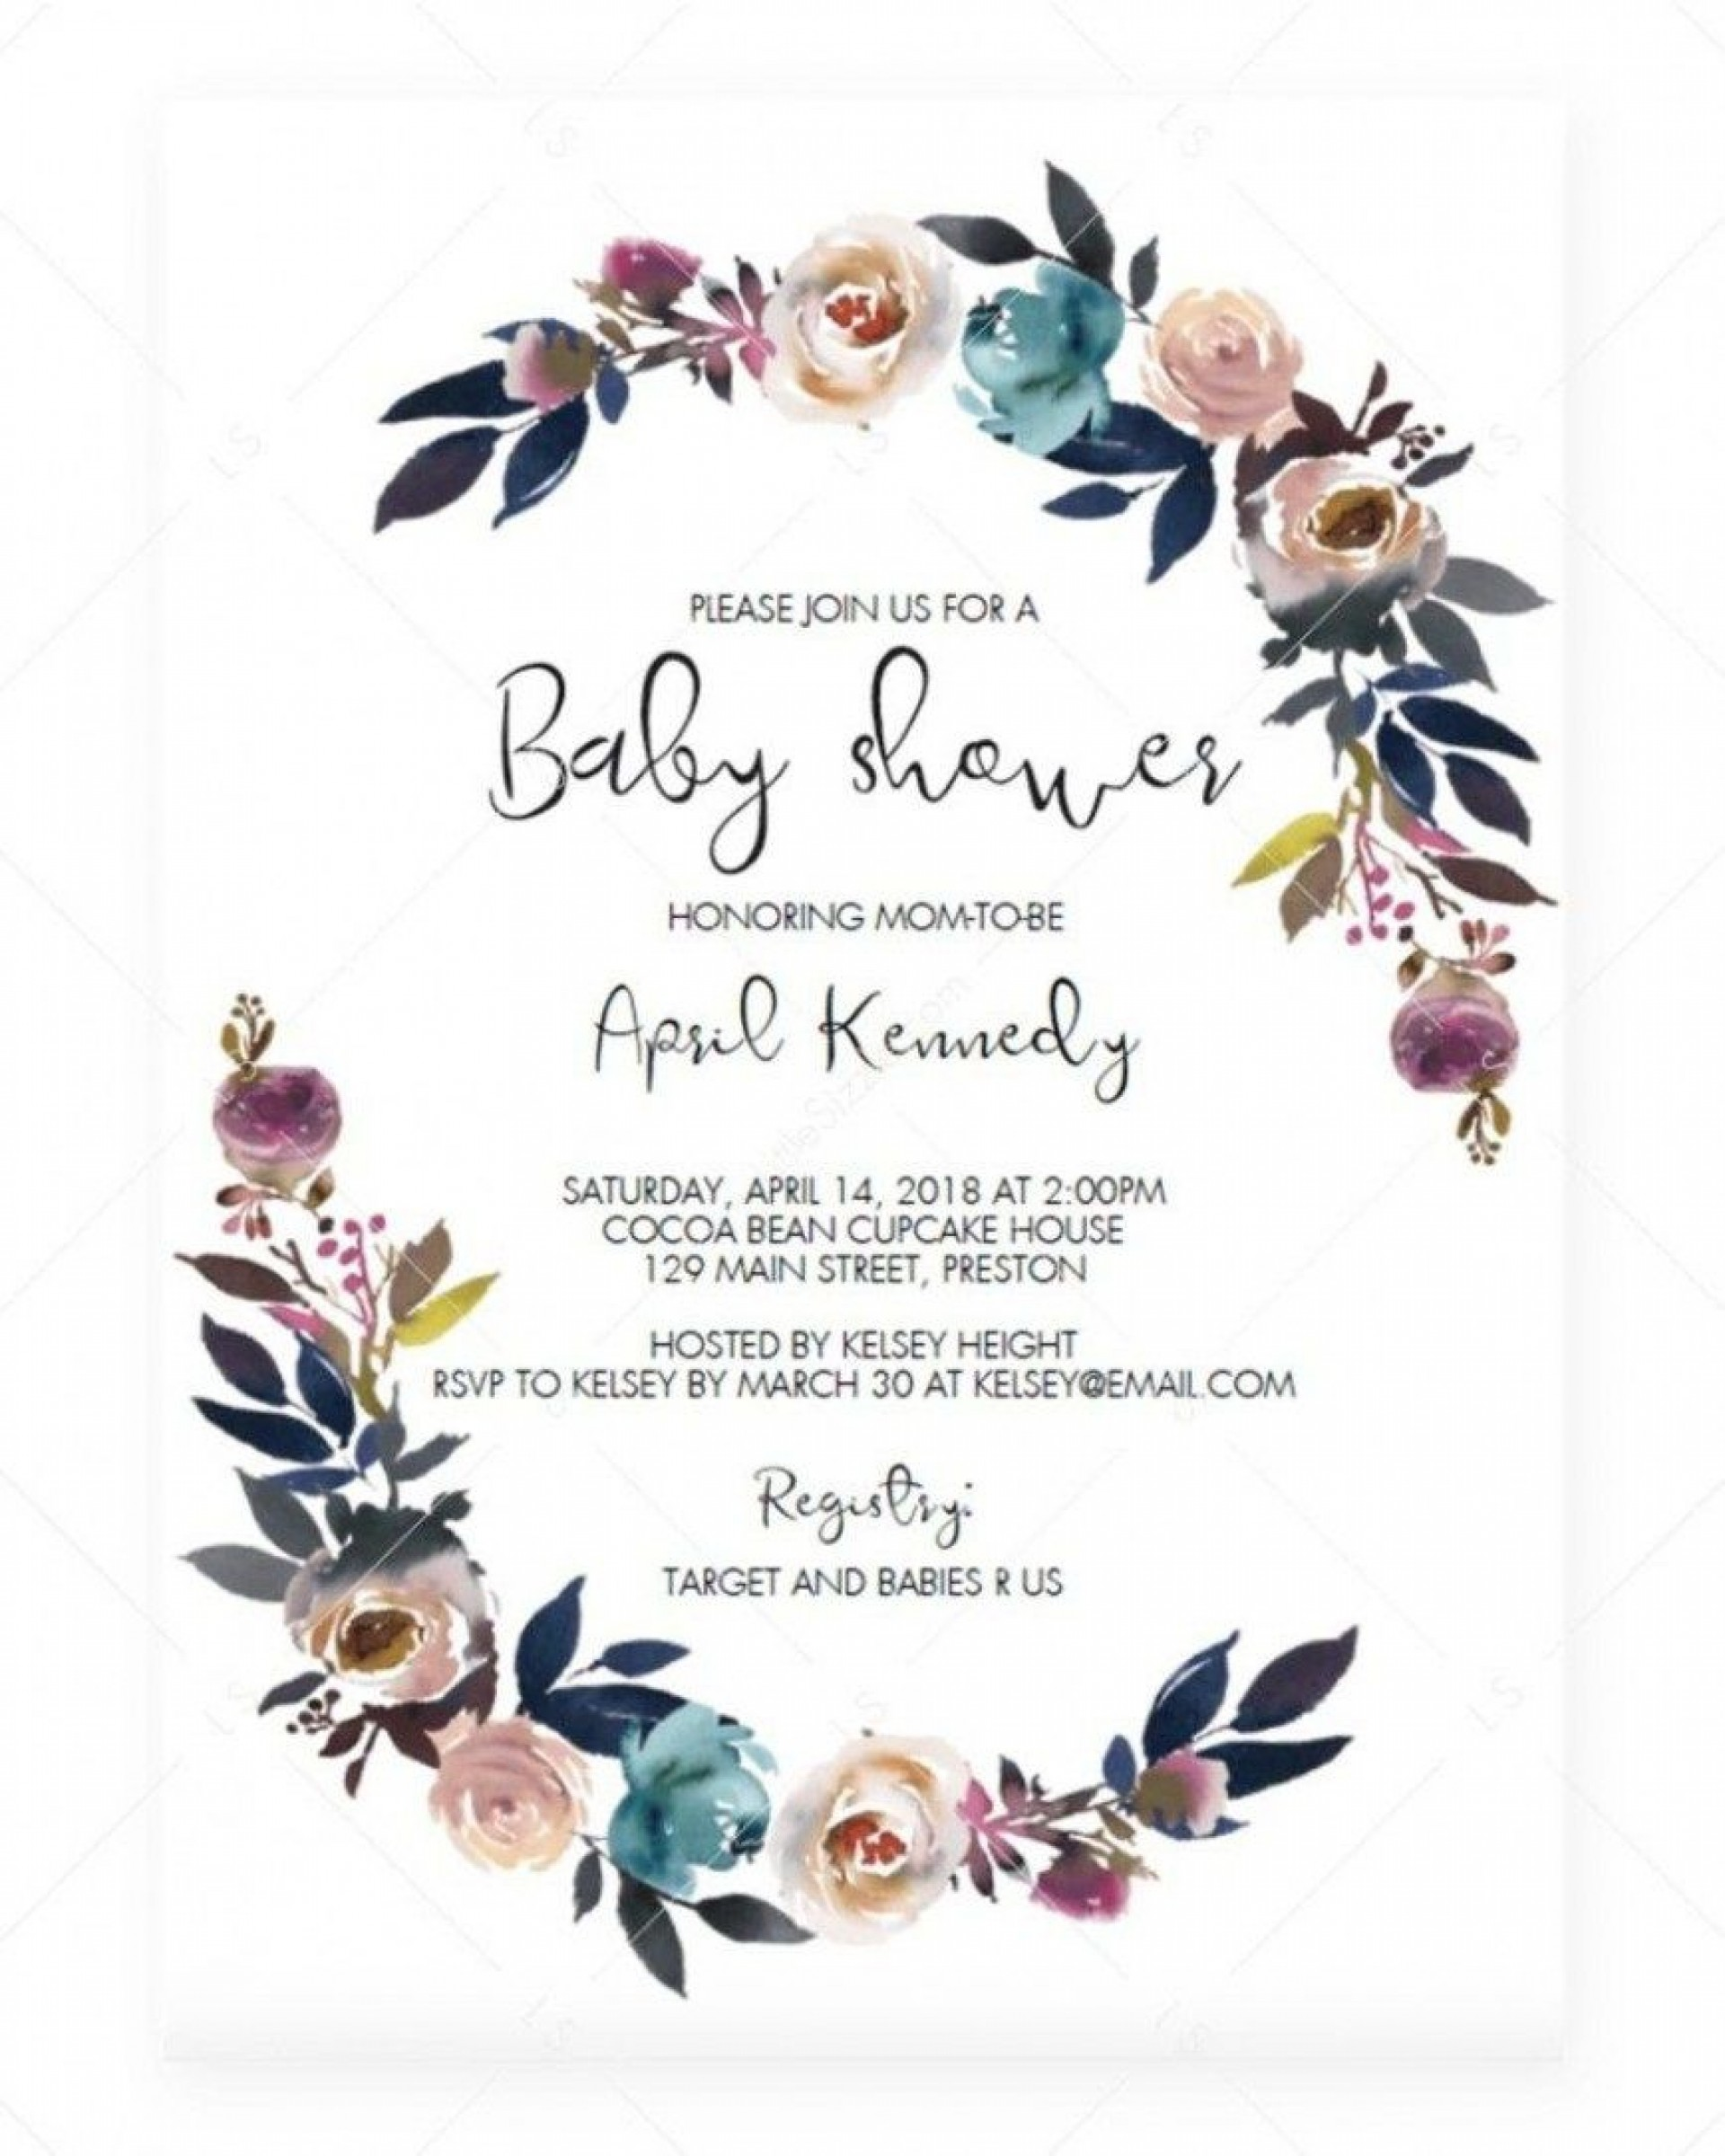 006 Stirring Baby Shower Invitation Card Template Free Download Idea  Indian1920